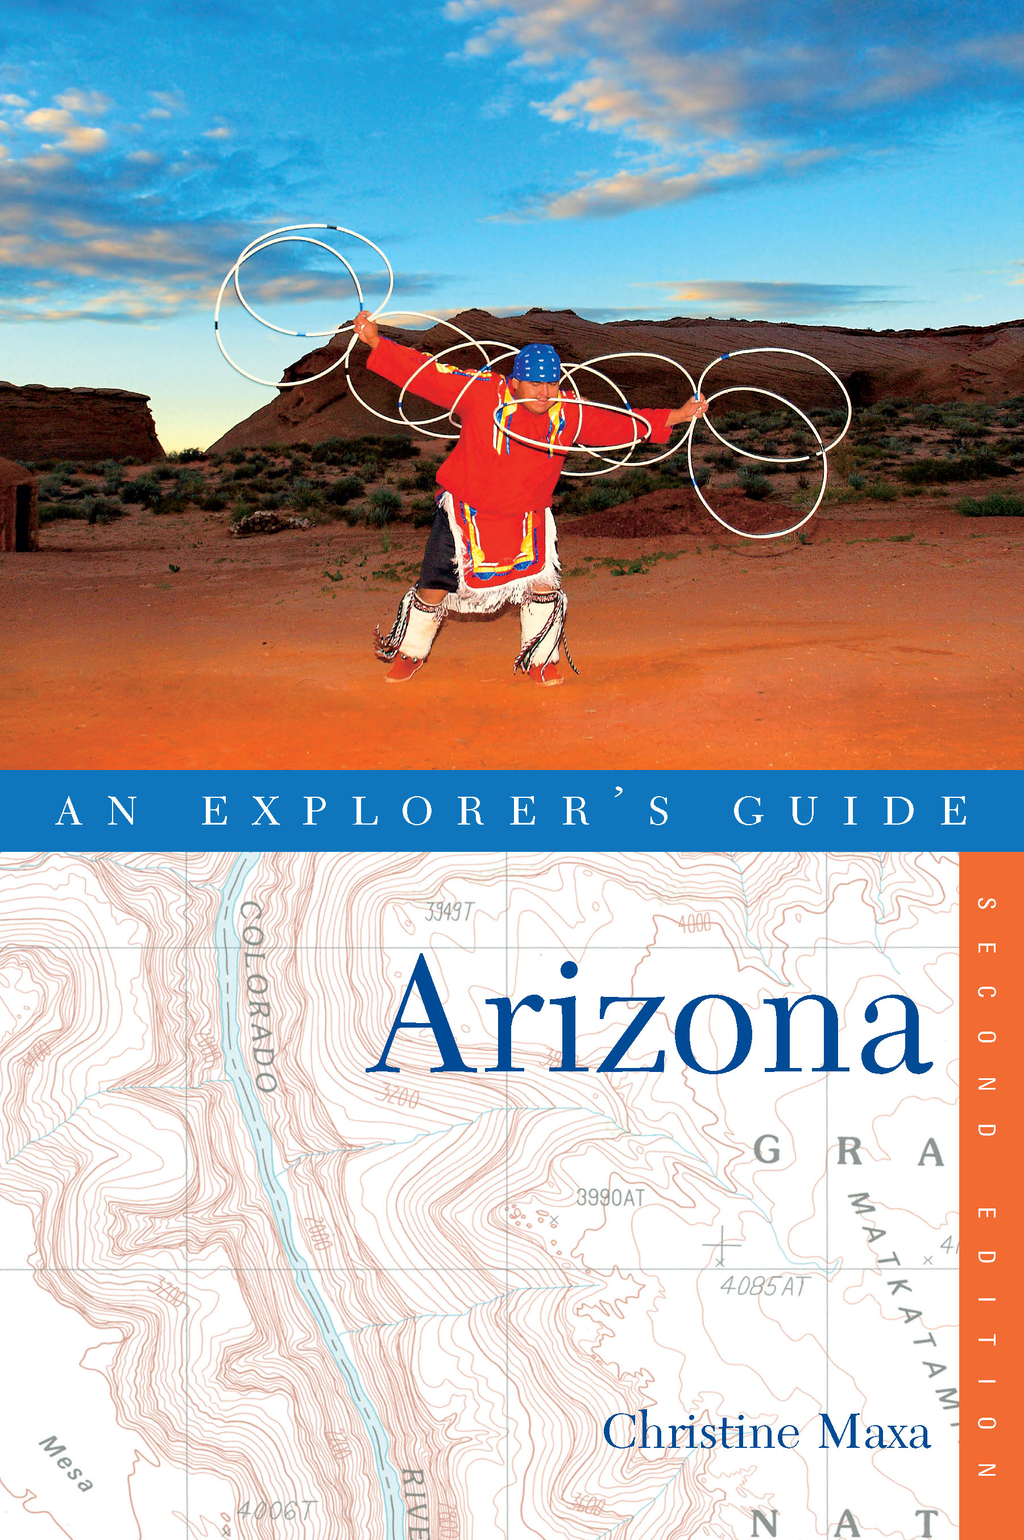 Explorer's Guide Arizona (Second Edition)  (Explorer's Complete) By: Christine Maxa